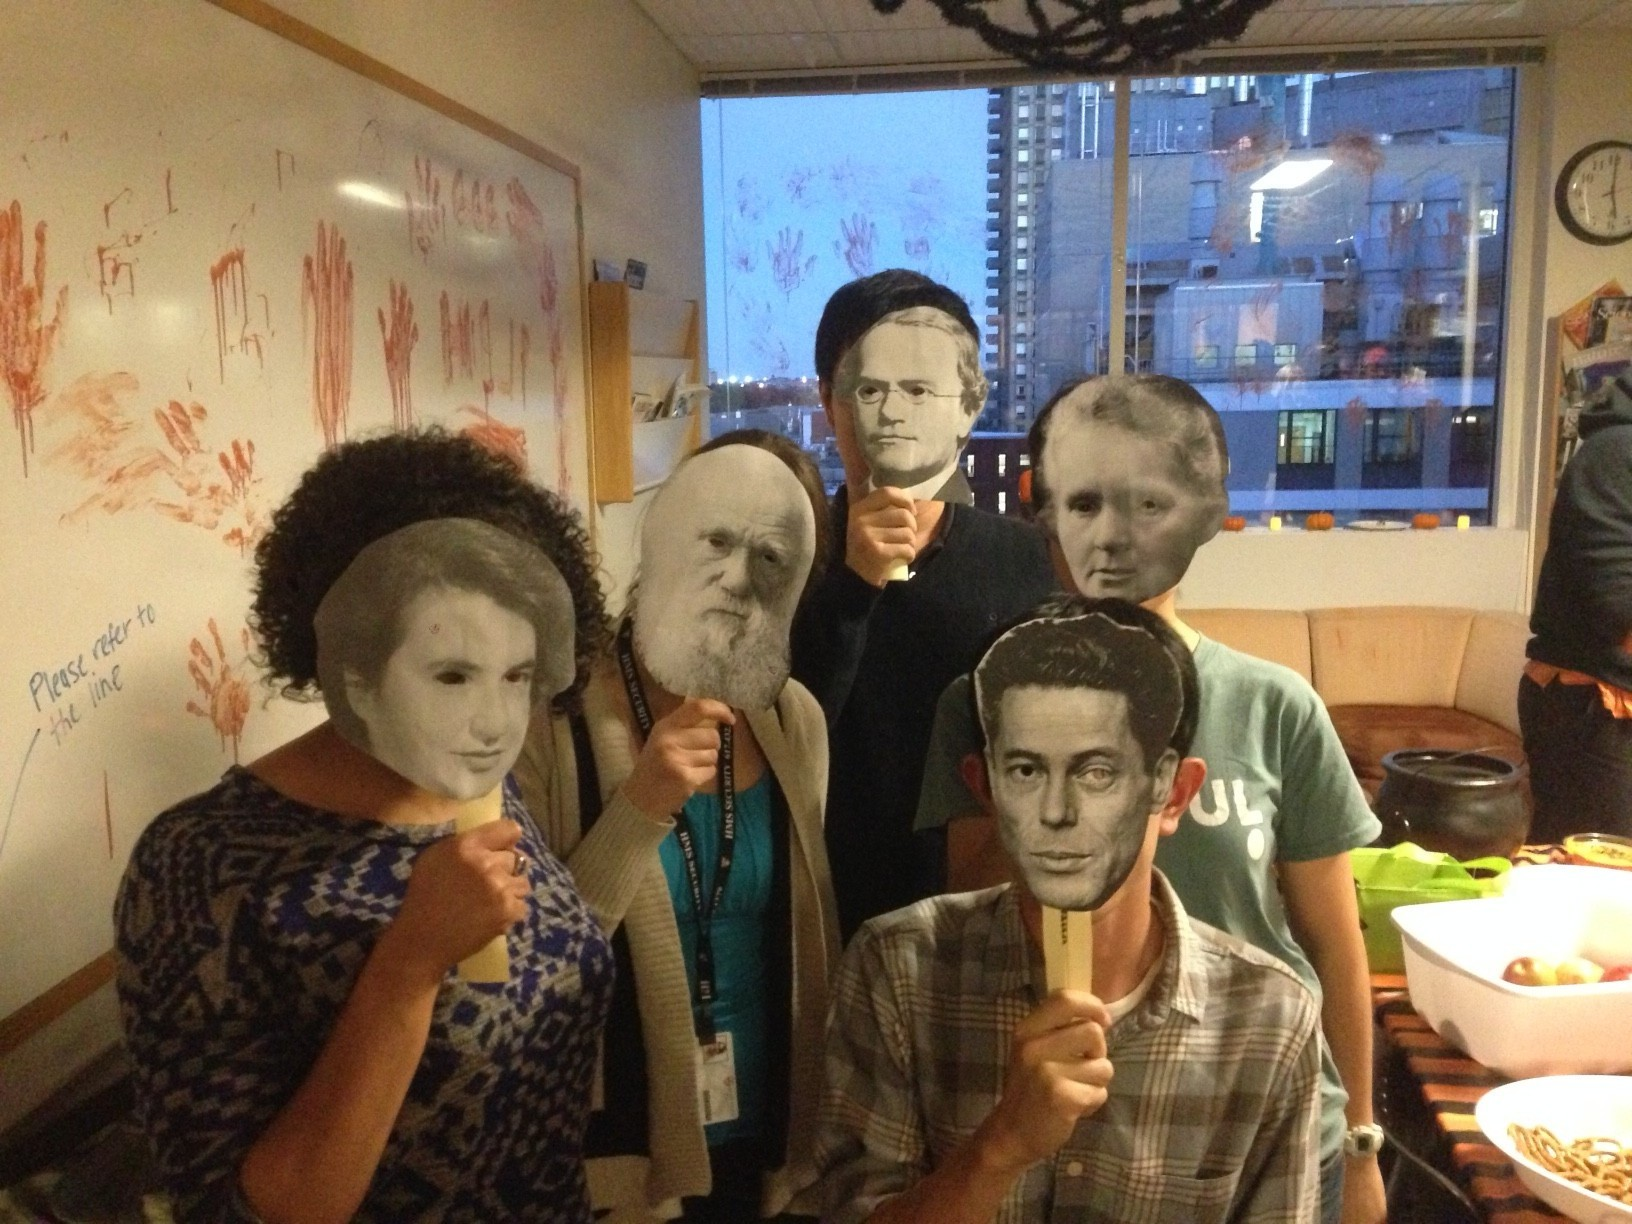 The Springer lab ghosts of scientists past. Left to right: Rosalind Franklin, Charles Darwin, Gregor Mendel, Jacques Monod, and Marie Curie